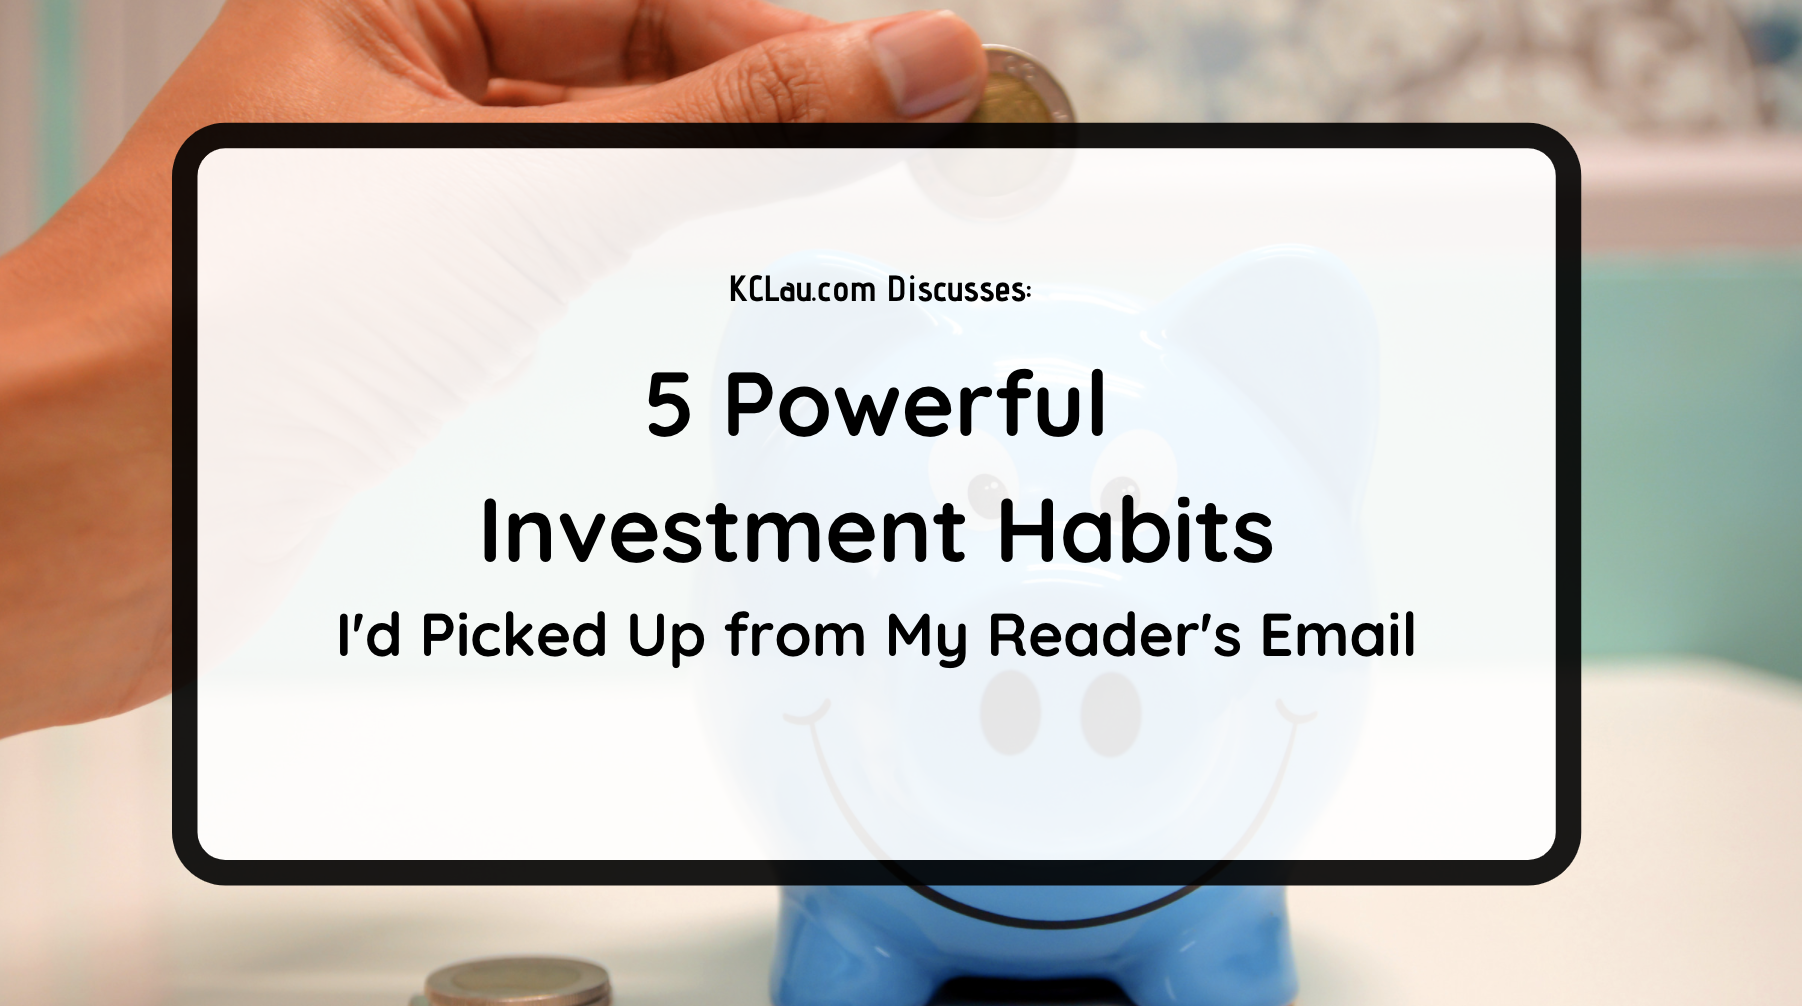 5 Powerful Investment Habits I'd Picked Up from My Reader's Email